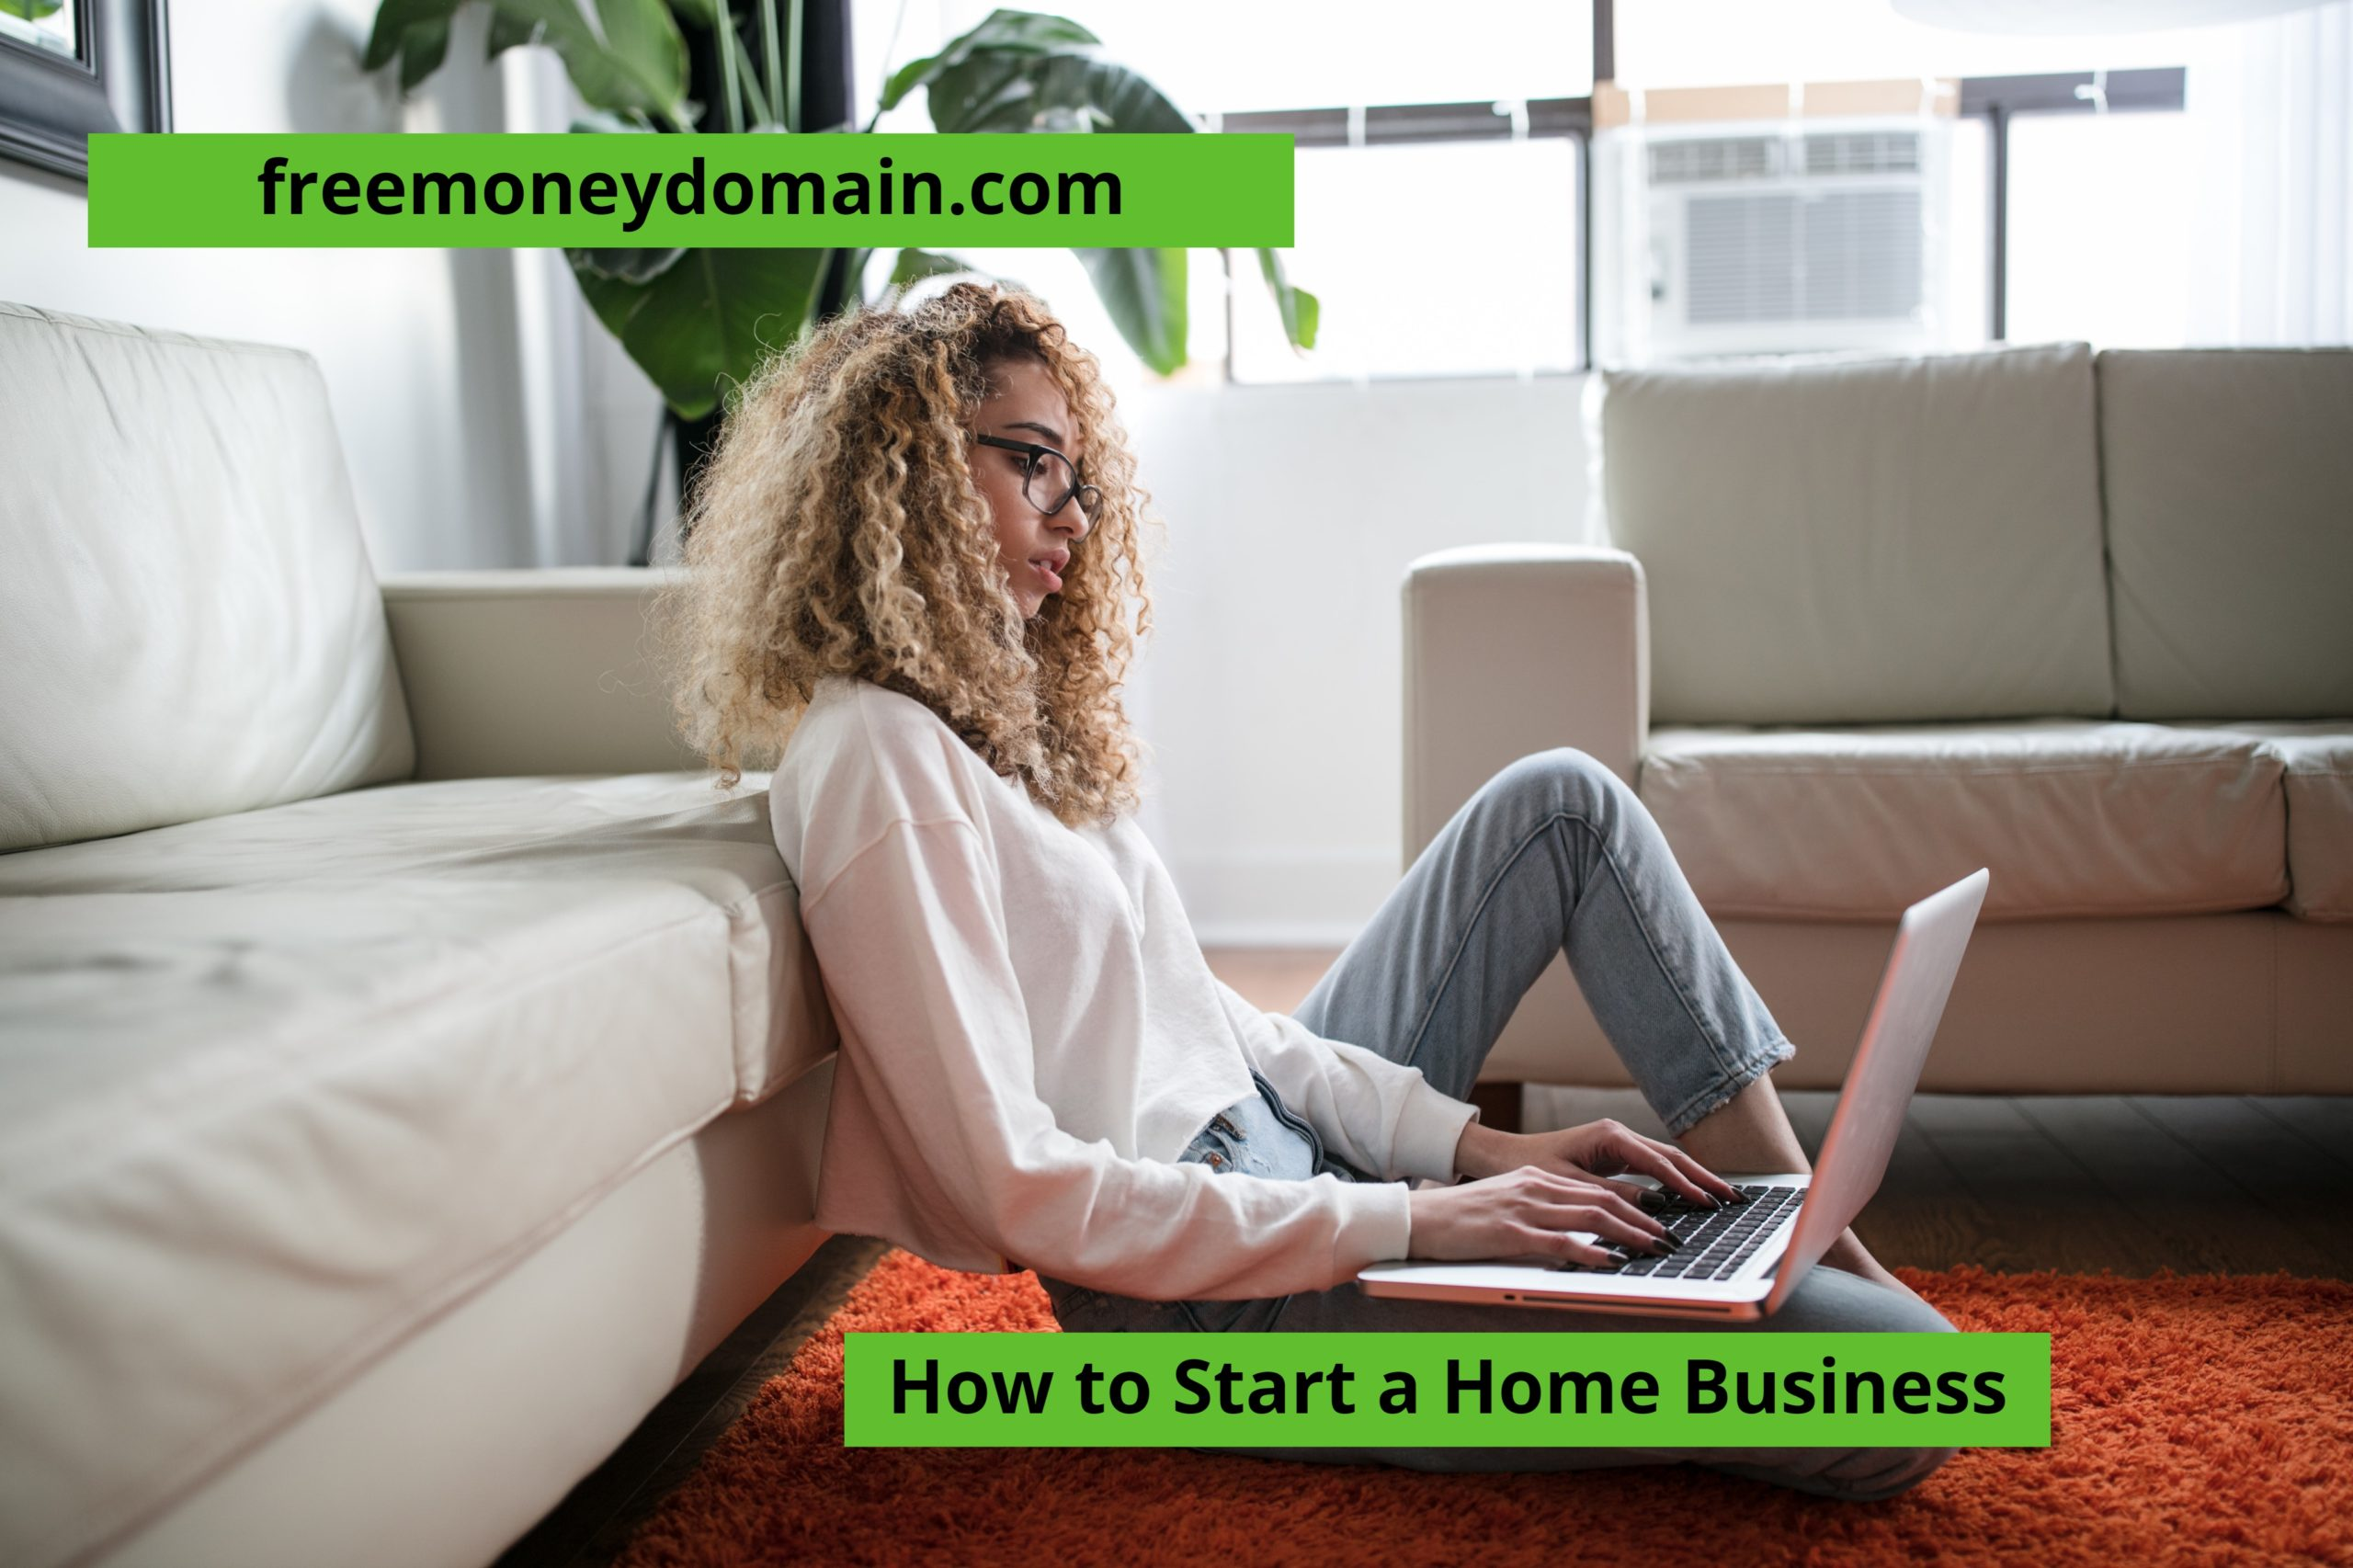 How to start a Home Business in 2021